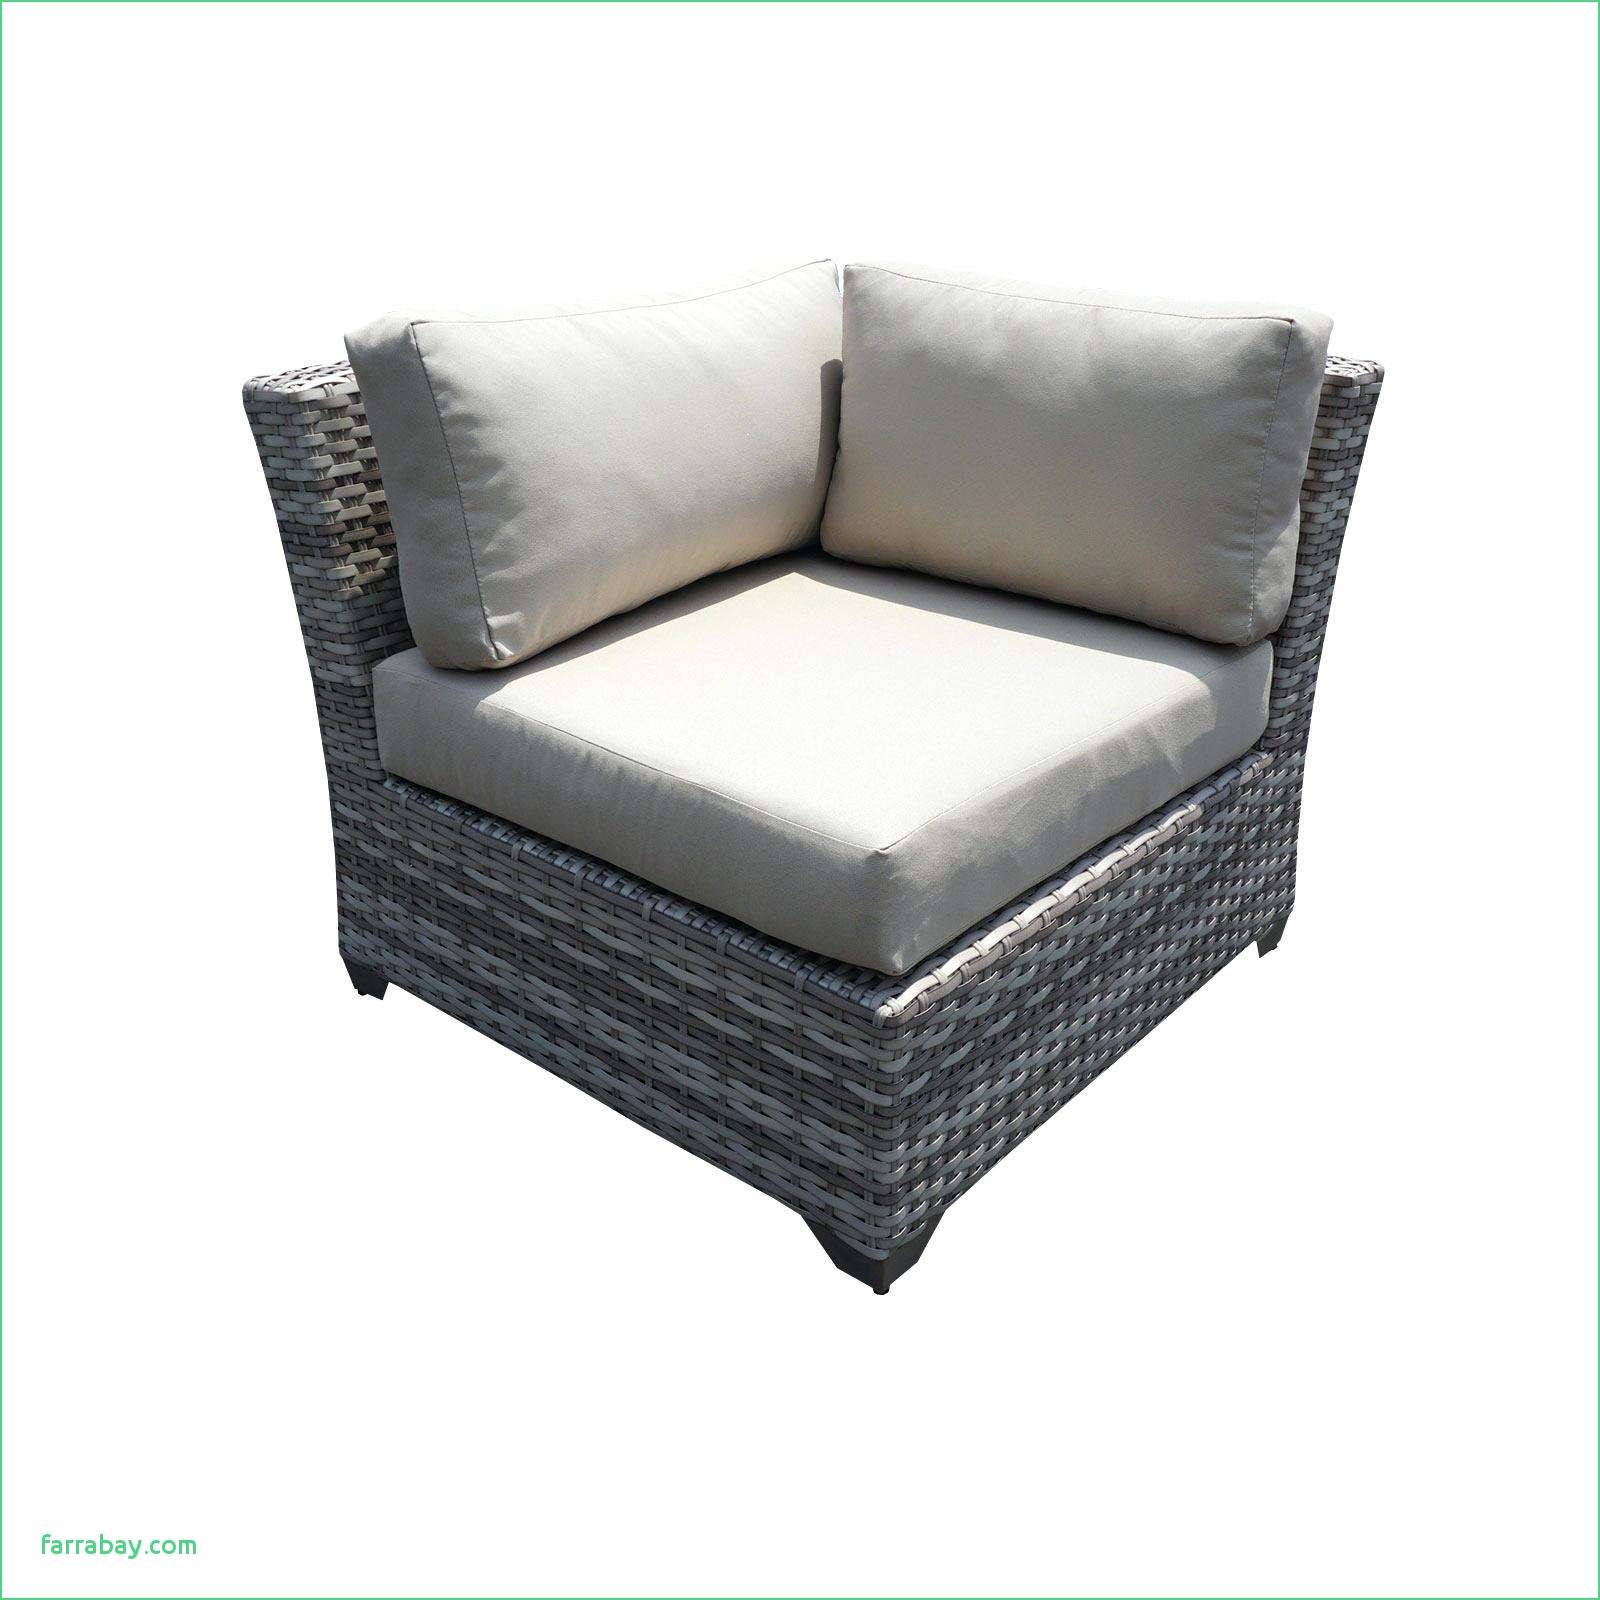 garden furniture hanging chair unique wicker outdoor sofa 0d patio chairs sale replacement cushions of garden furniture hanging chair